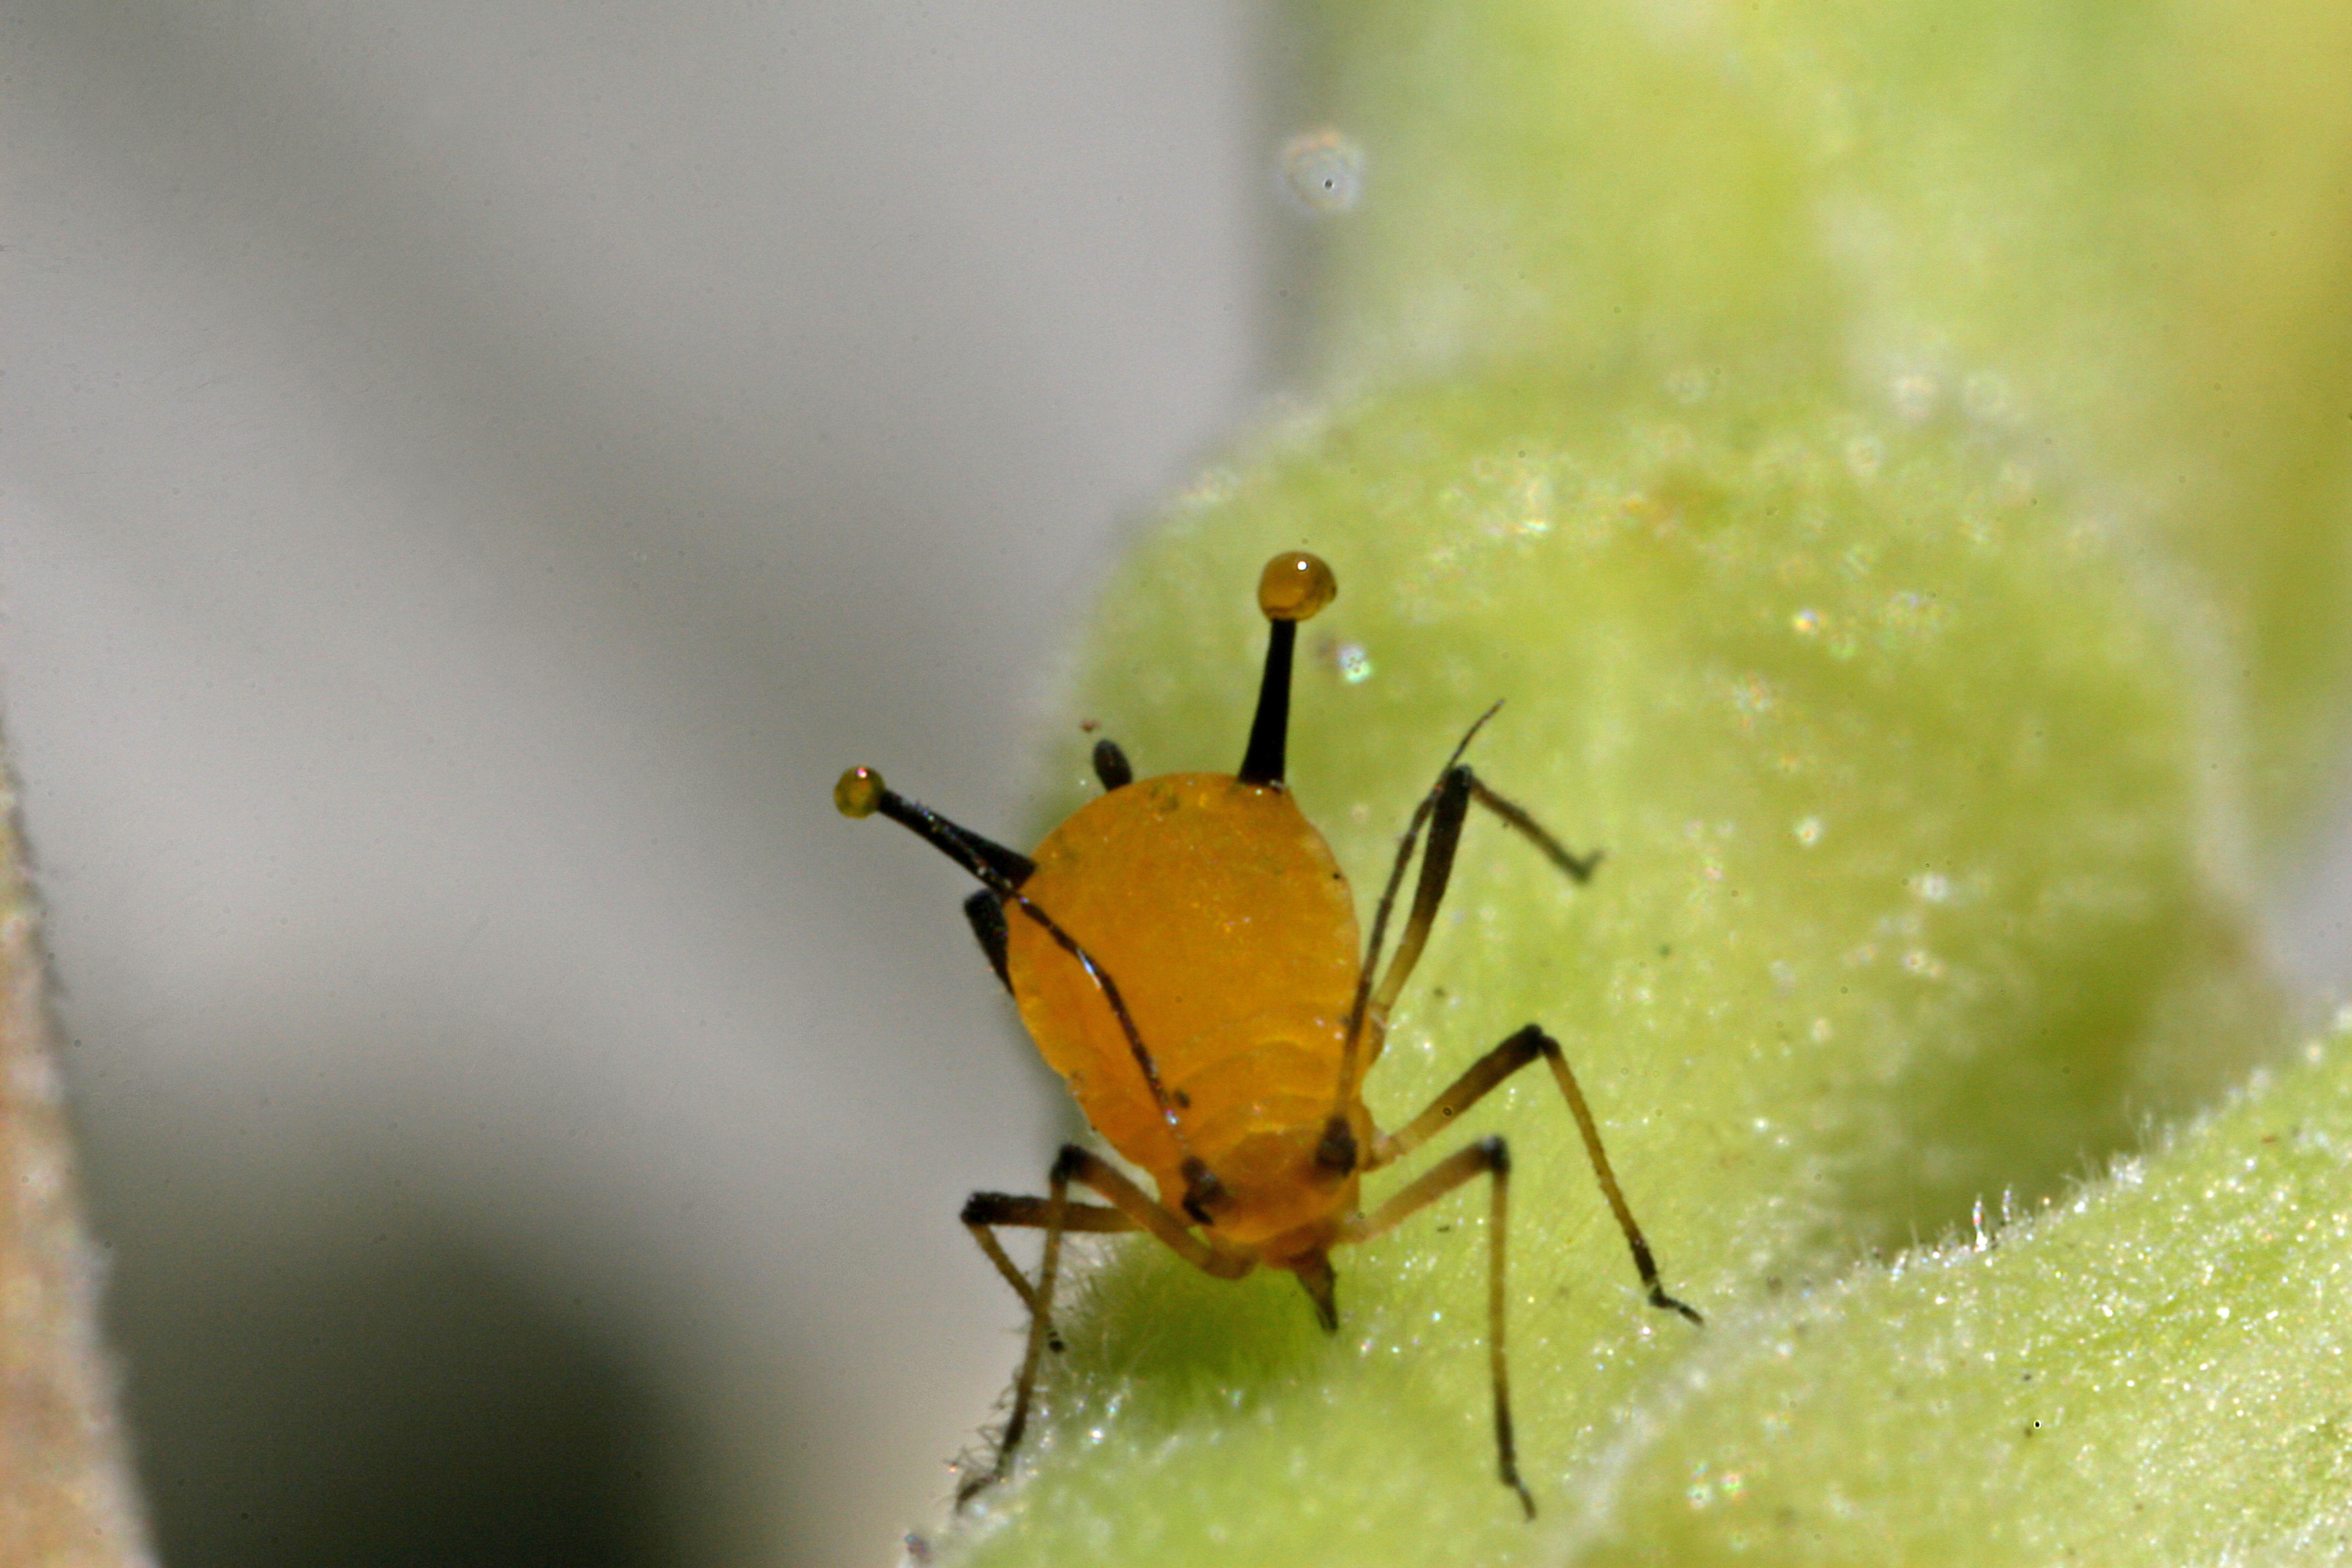 Aphid on plant